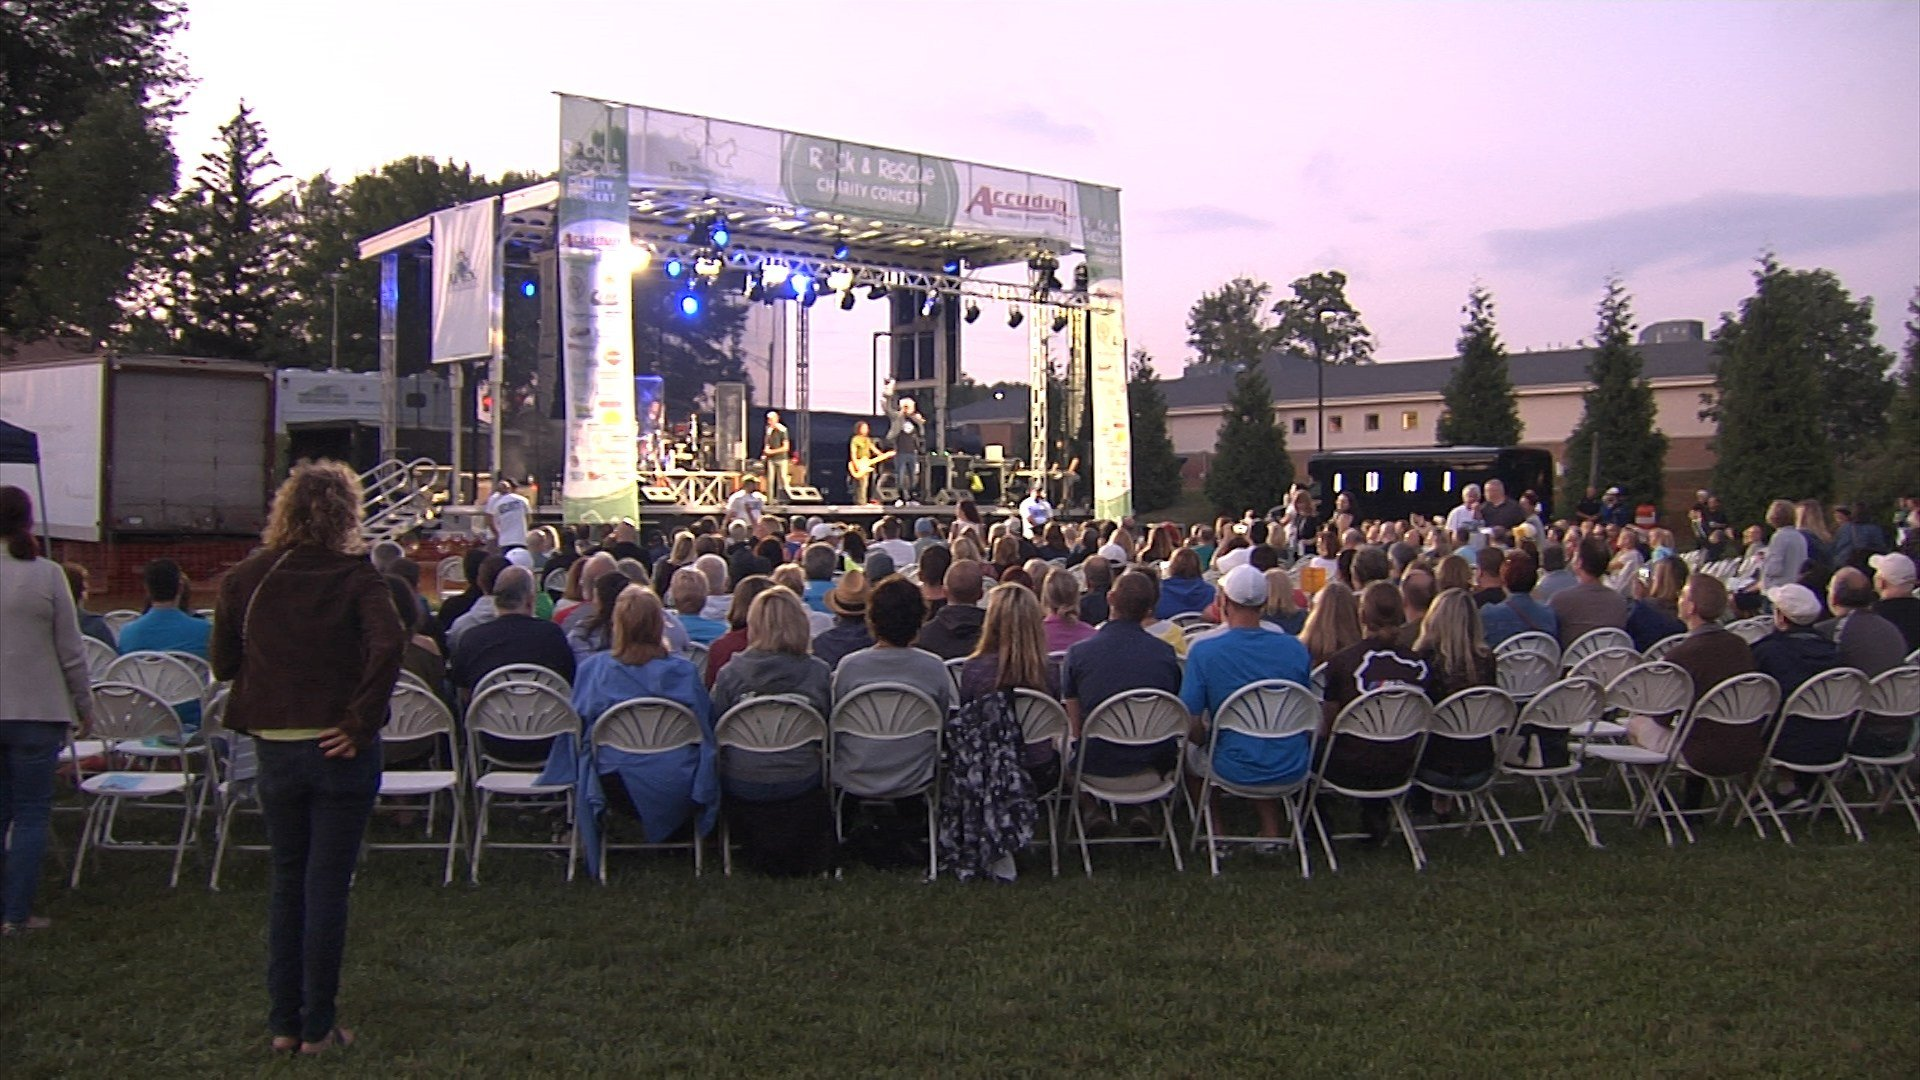 Big turnout for Humane Society Rock & Rescue concert